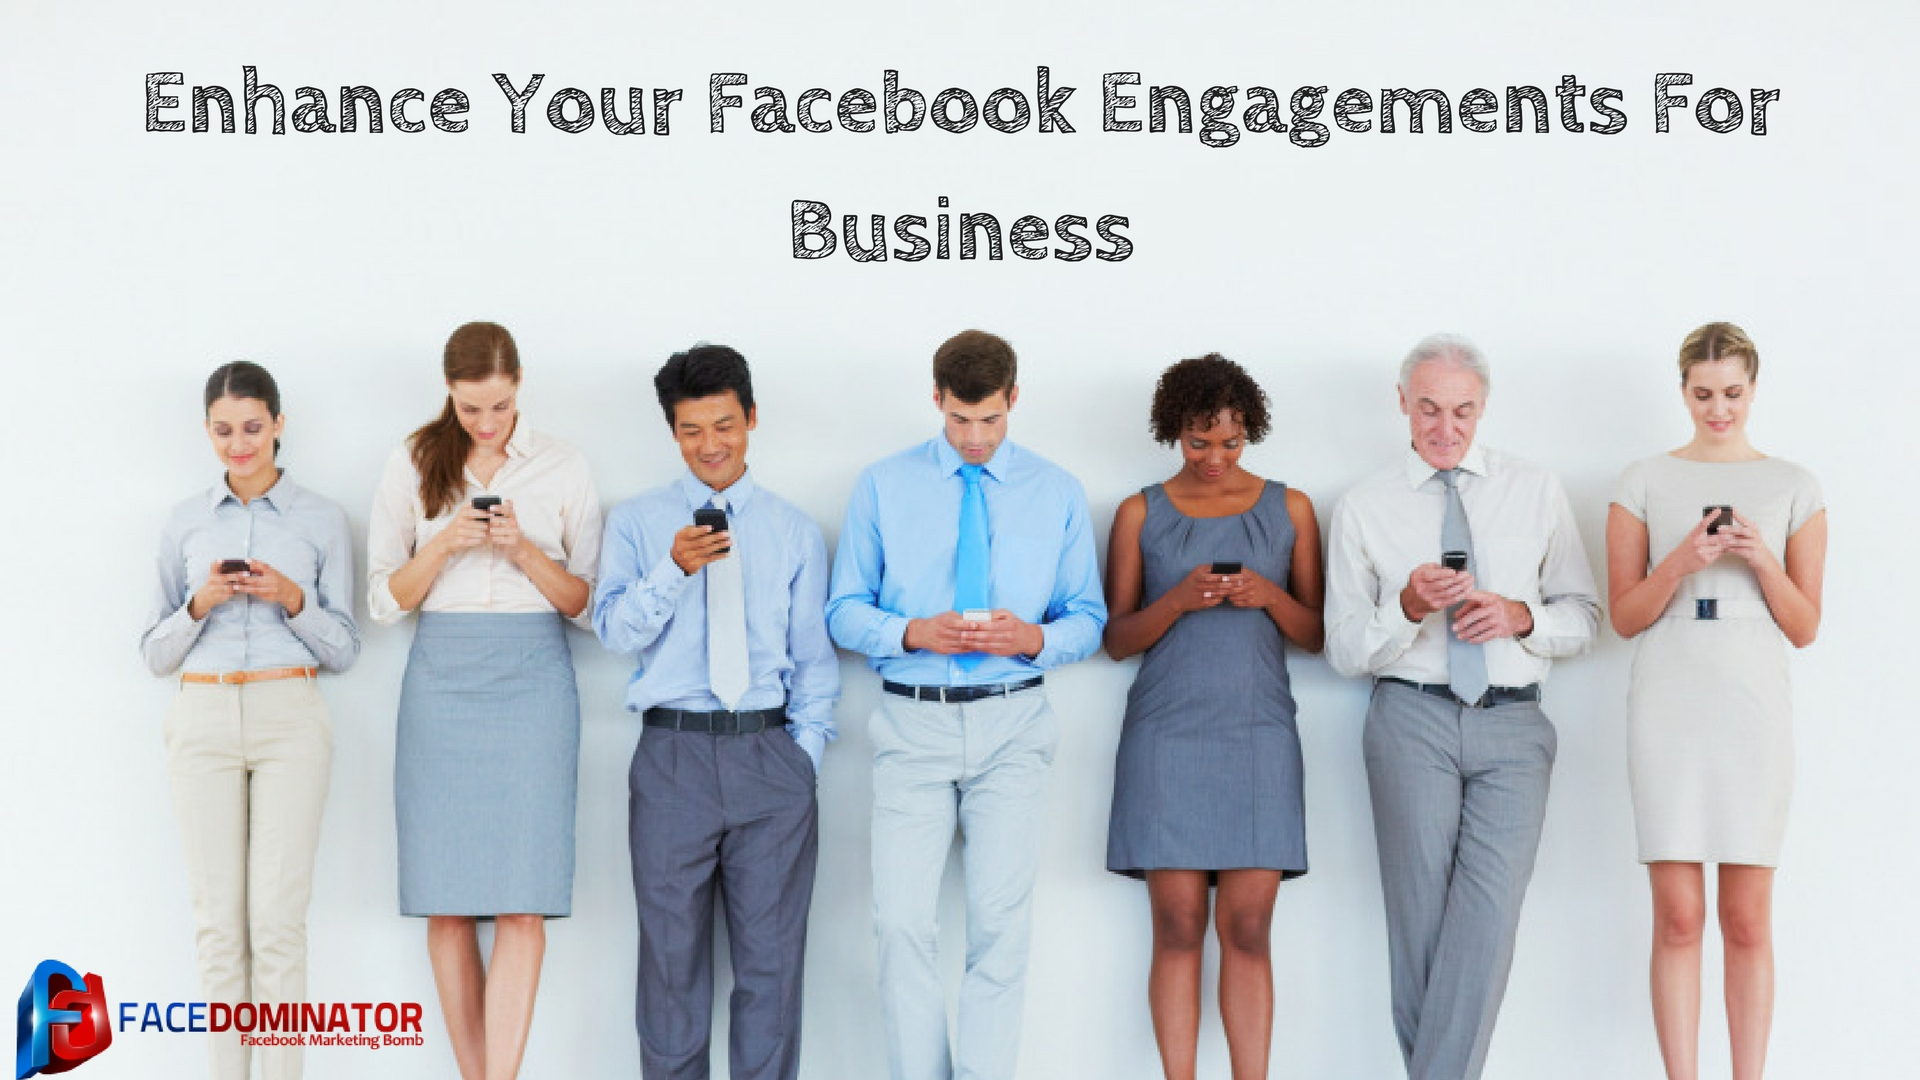 Enhance-Your-Facebook-Engagements-For-Business